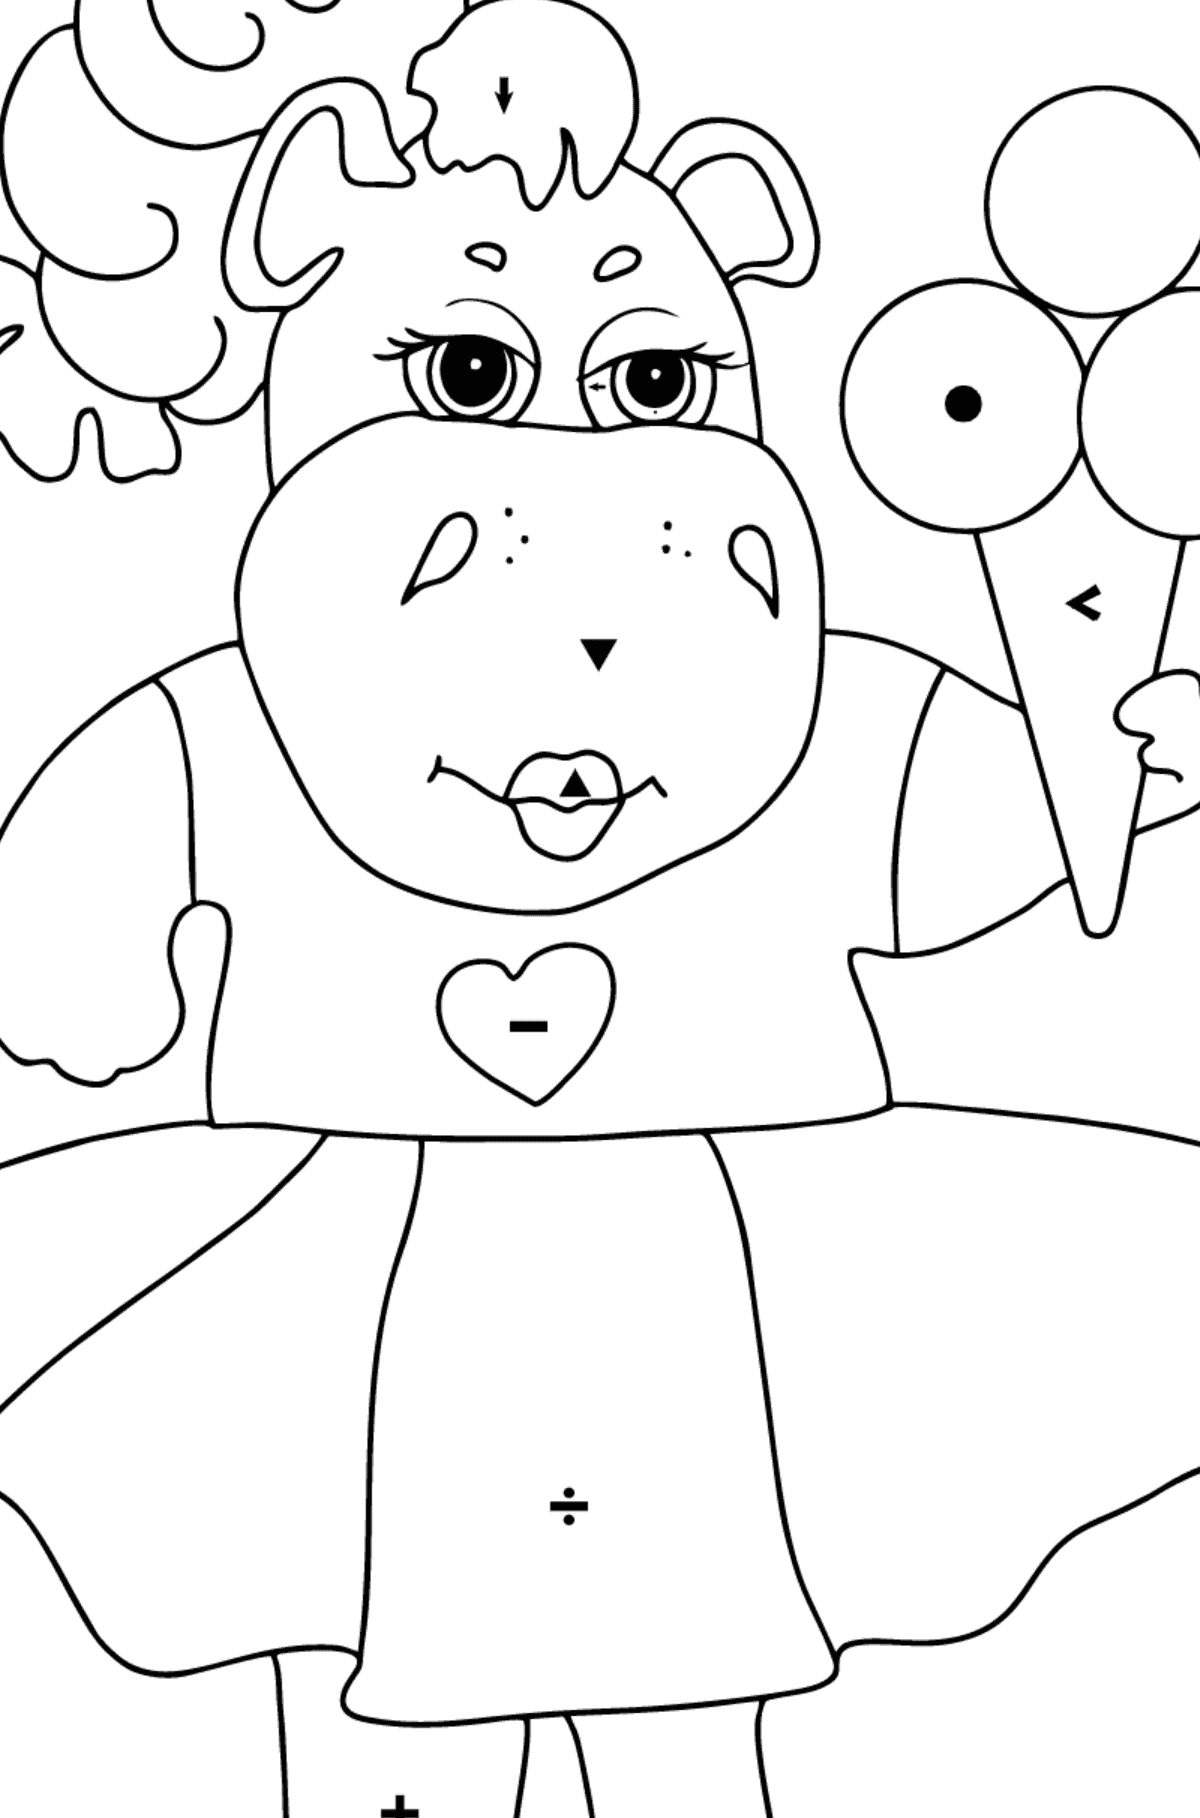 A Hippo in a Fancy Dress is Eating Ice Cream for Kids By Symbols